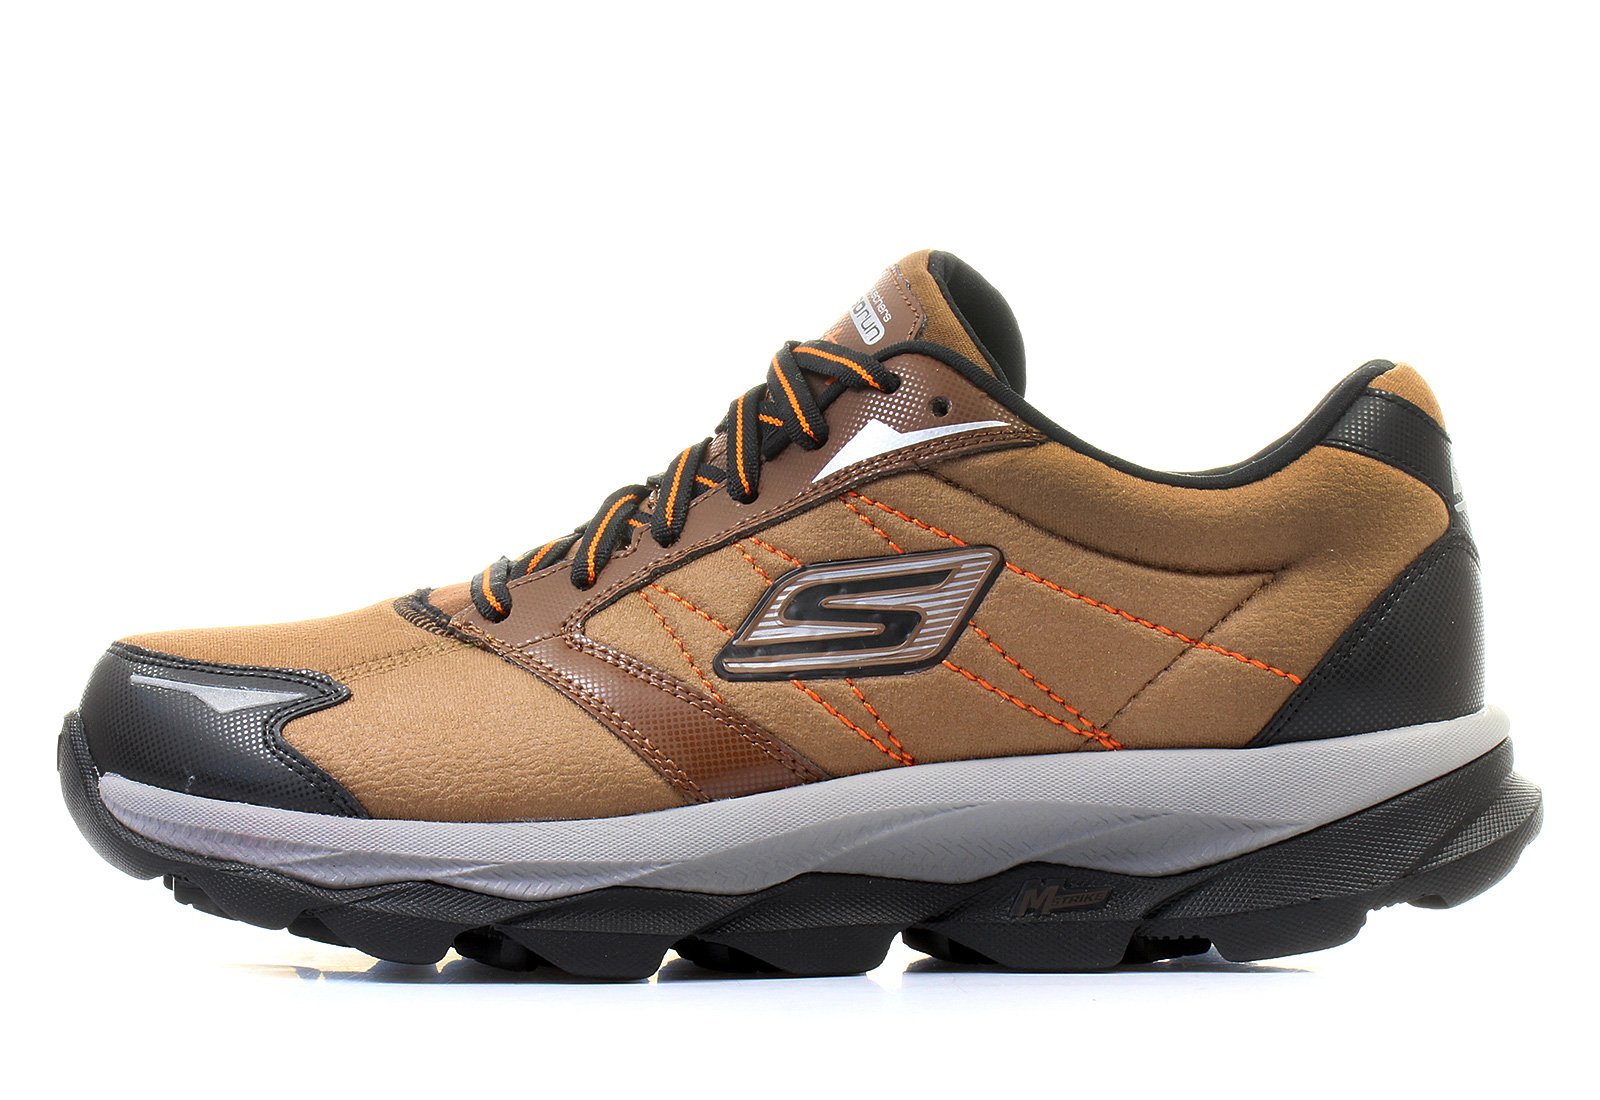 Skechers Shoes - Go Run Ultra Lt - 53916-brbk - Online Shop For Sneakers Shoes And Boots